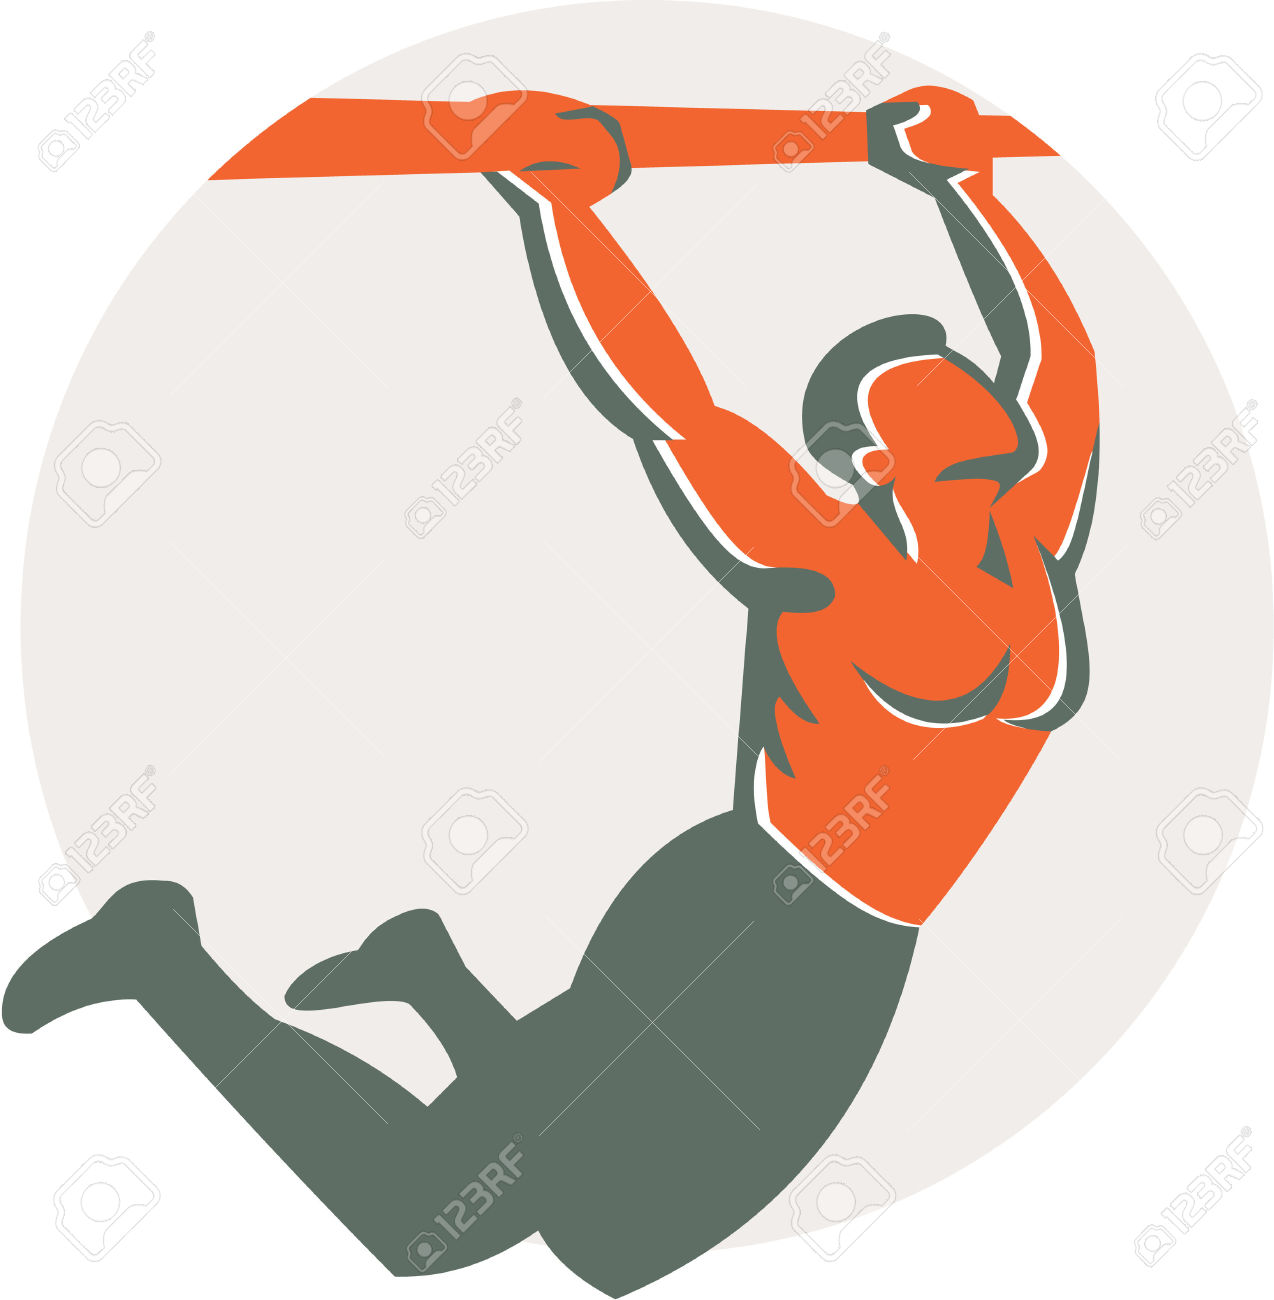 Illustration Of A Crossfit Athlete Body Weight Exercise Pull.